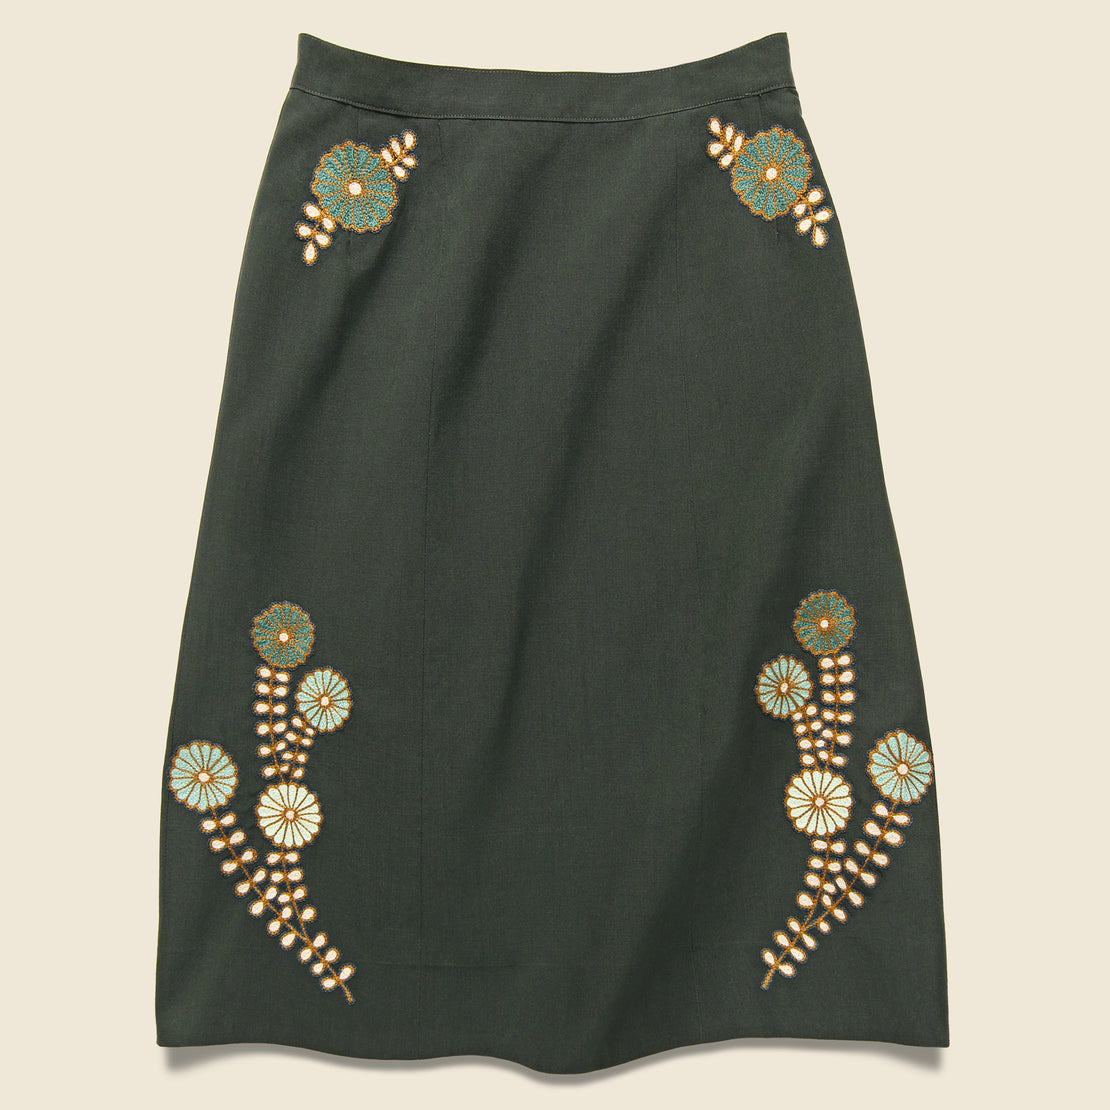 Fort Lonesome Squash Blossom Military Skirt - Army Green